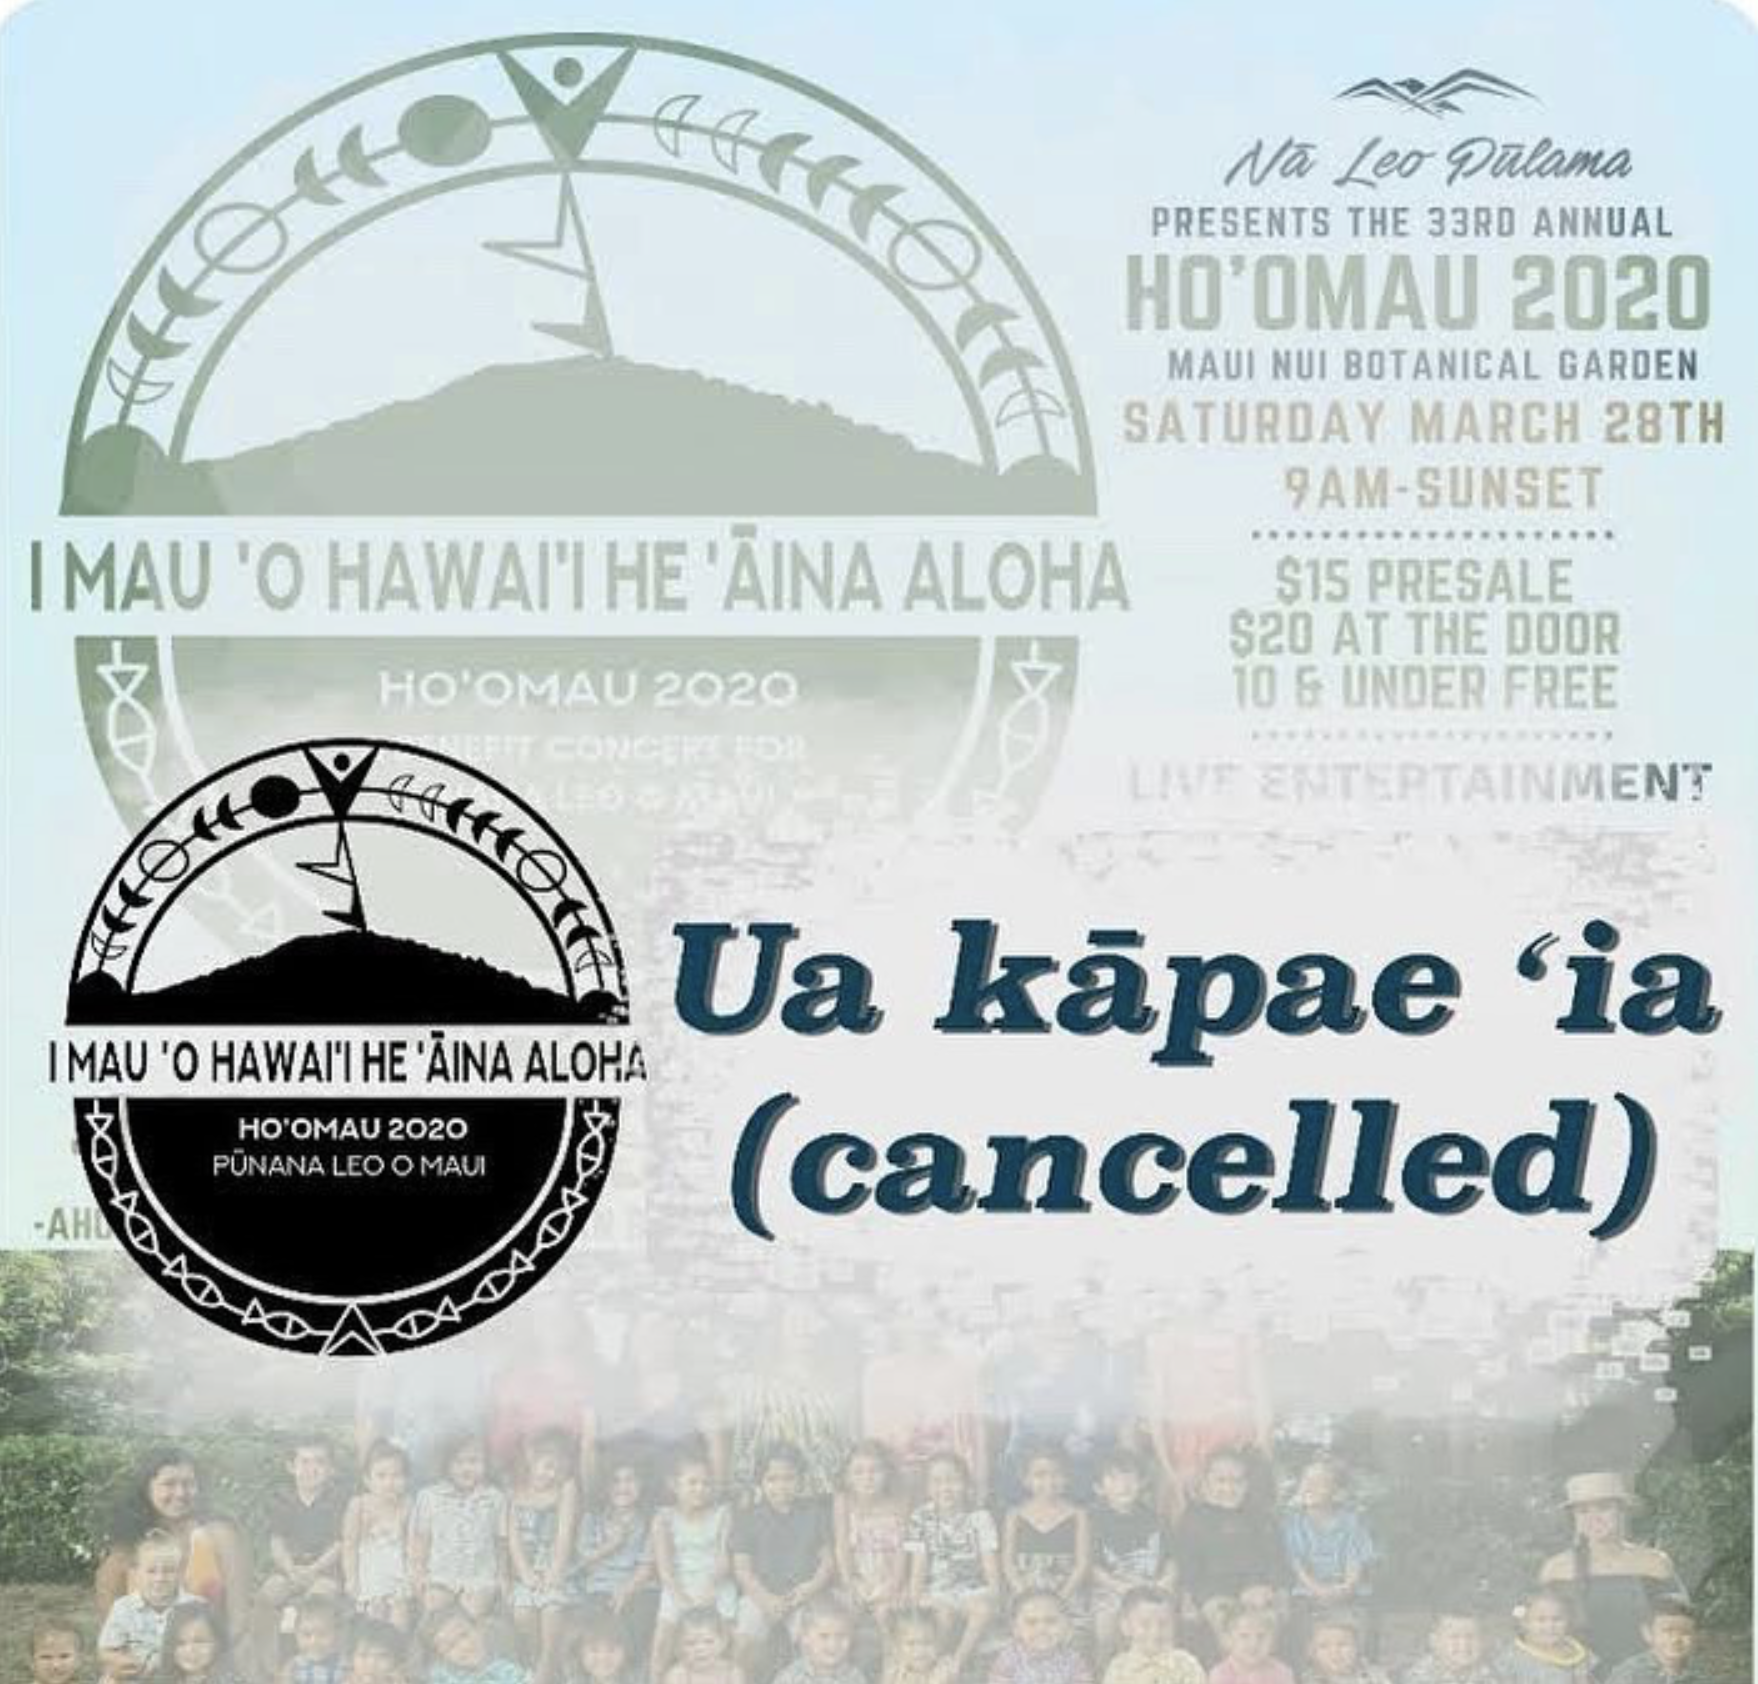 33rd Annual Ho'omau for 2020 Canceled